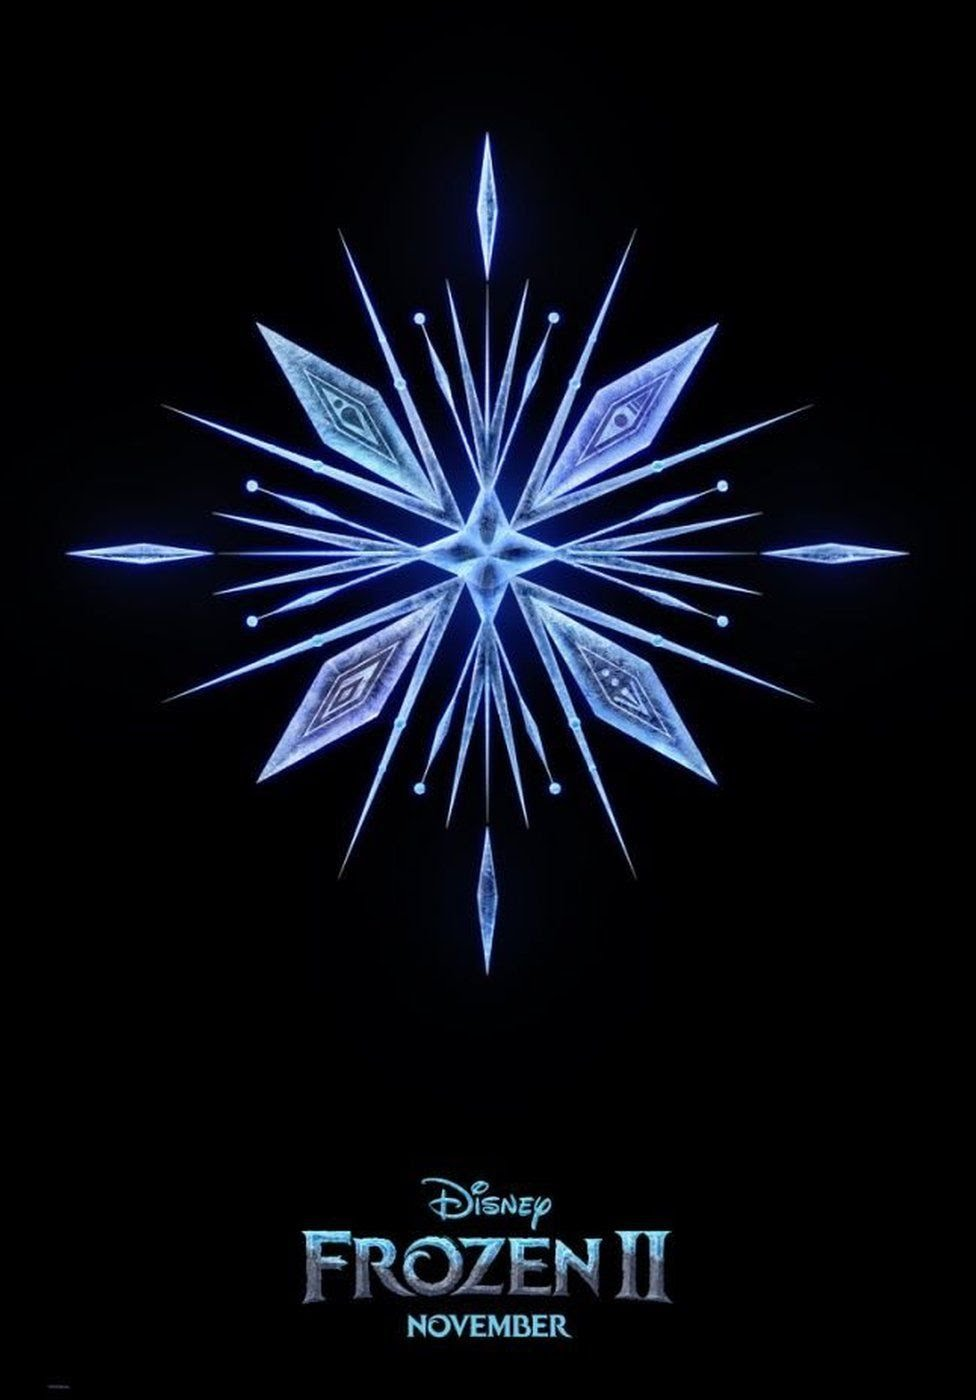 The Frozen 2 poster